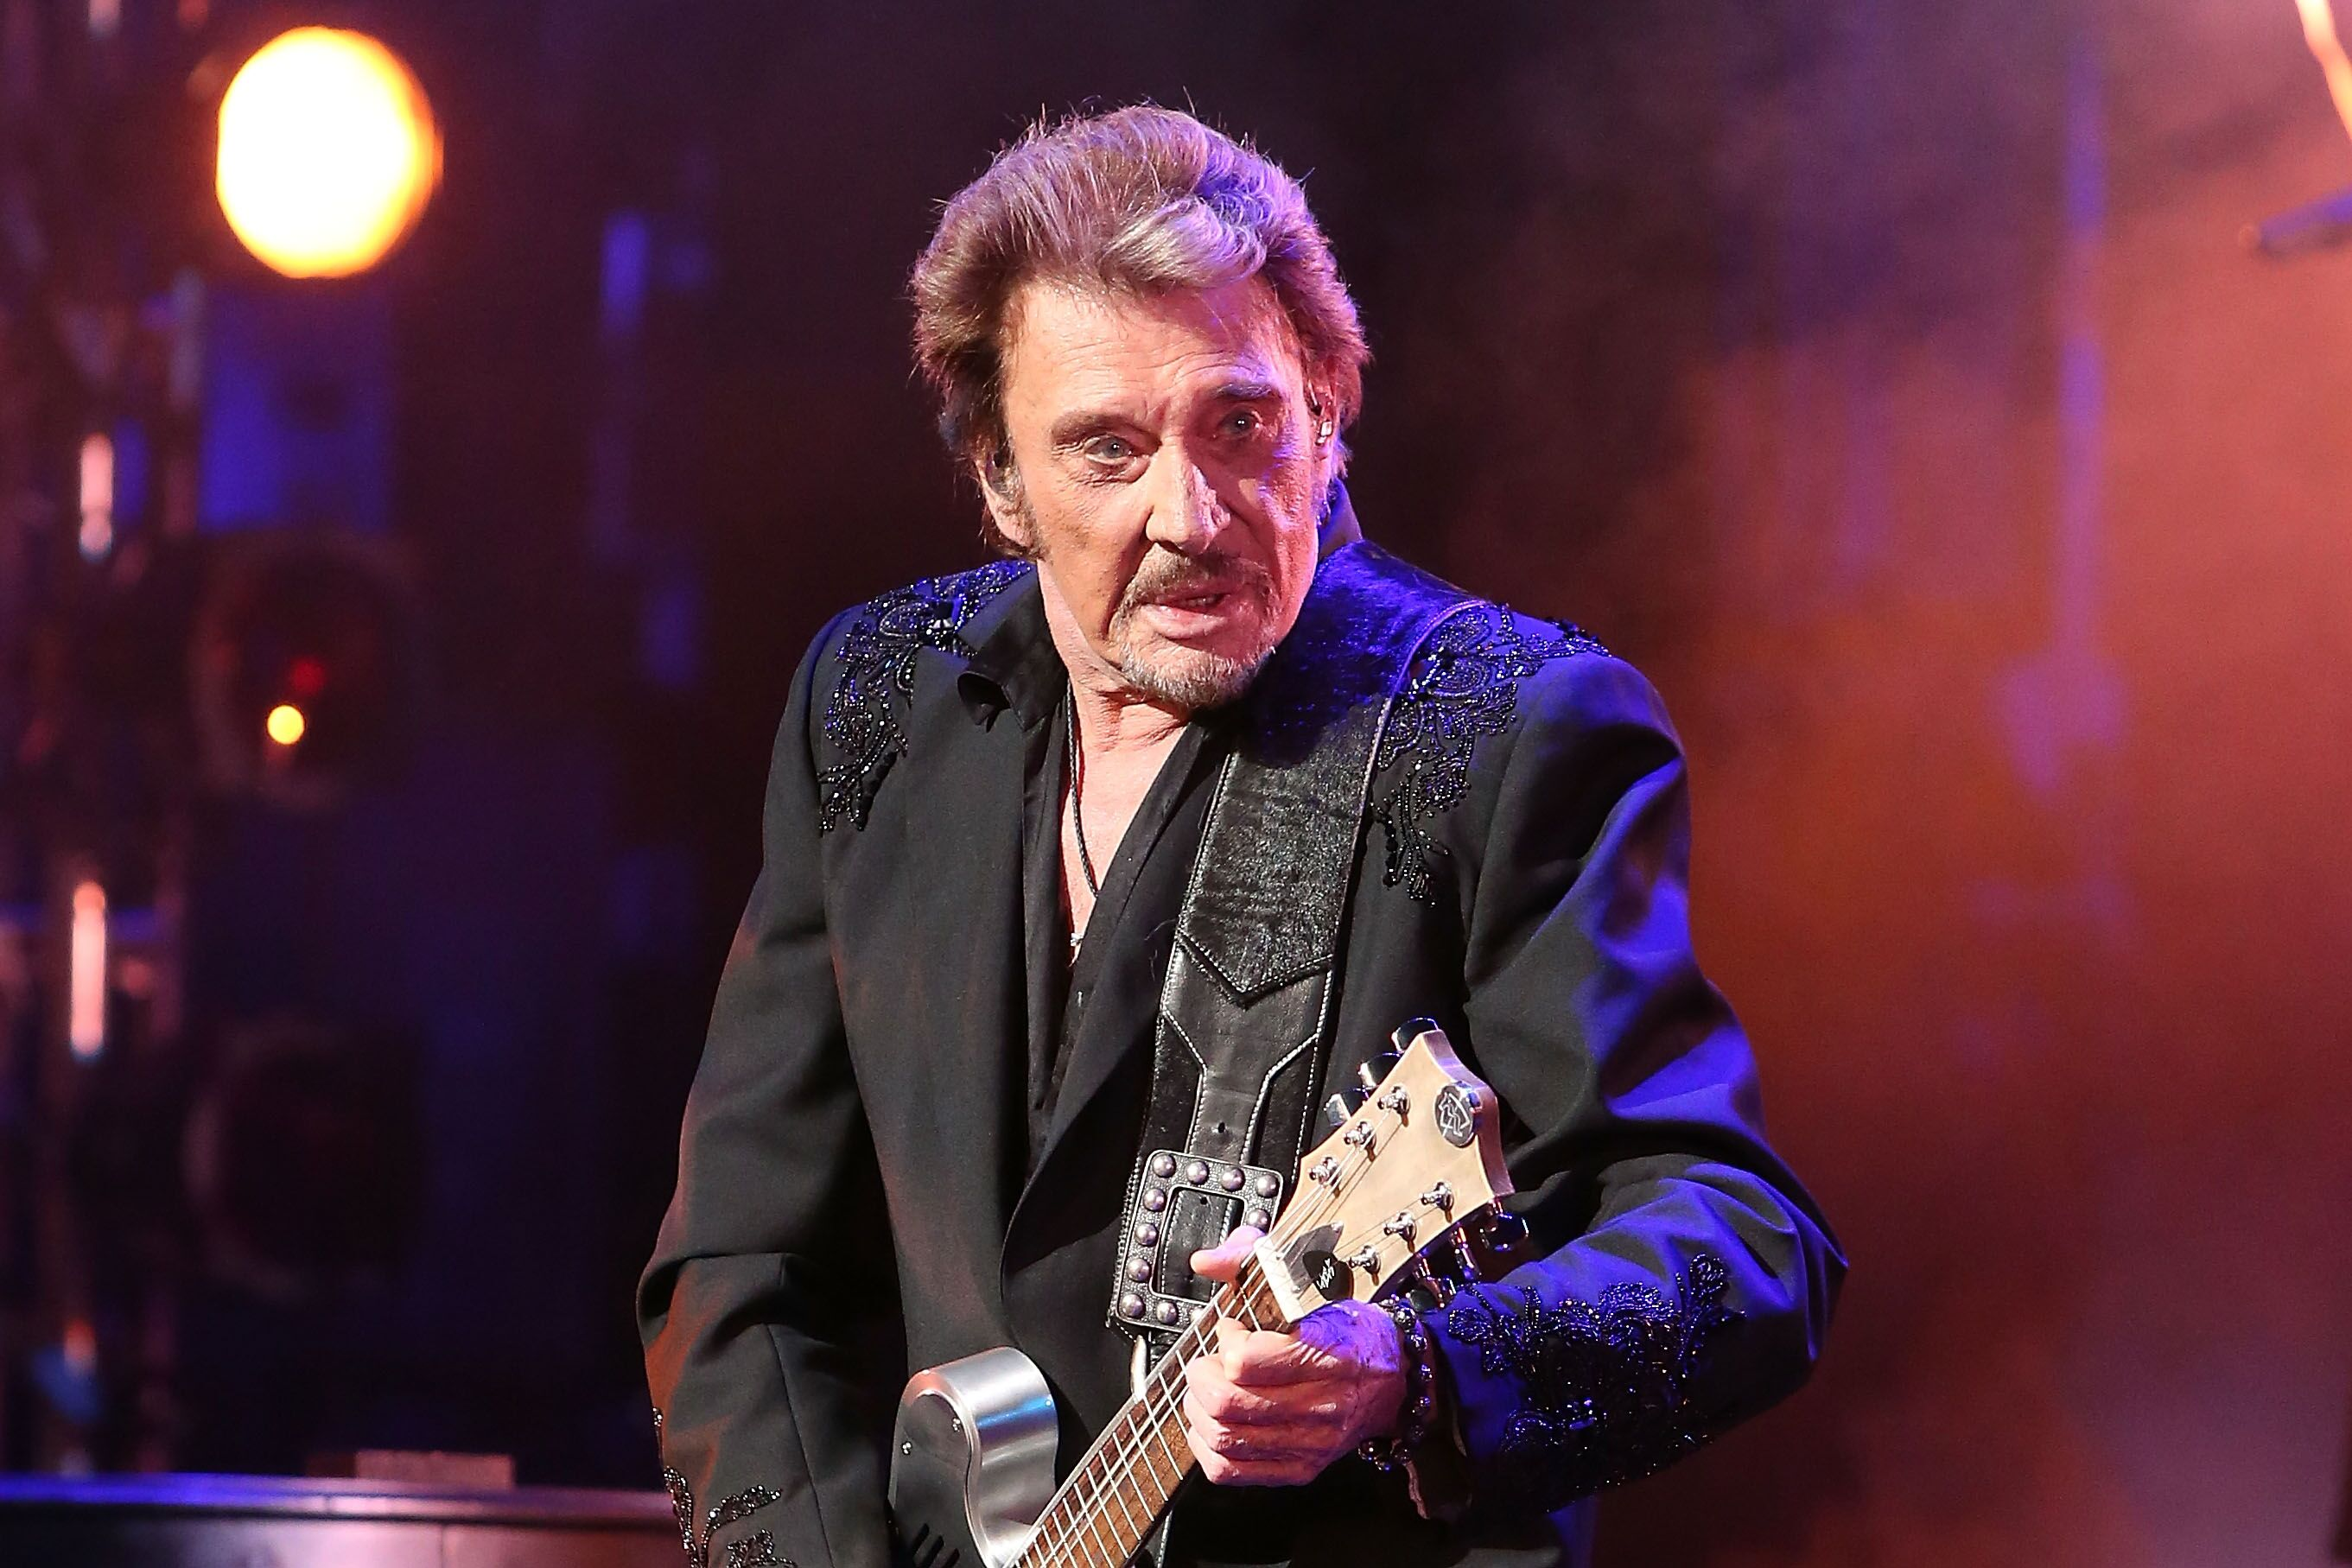 Johnny Hallyday chante sur scène au Beacon Theatre le 6 mai 2014 à New York. | Photo : Getty Images